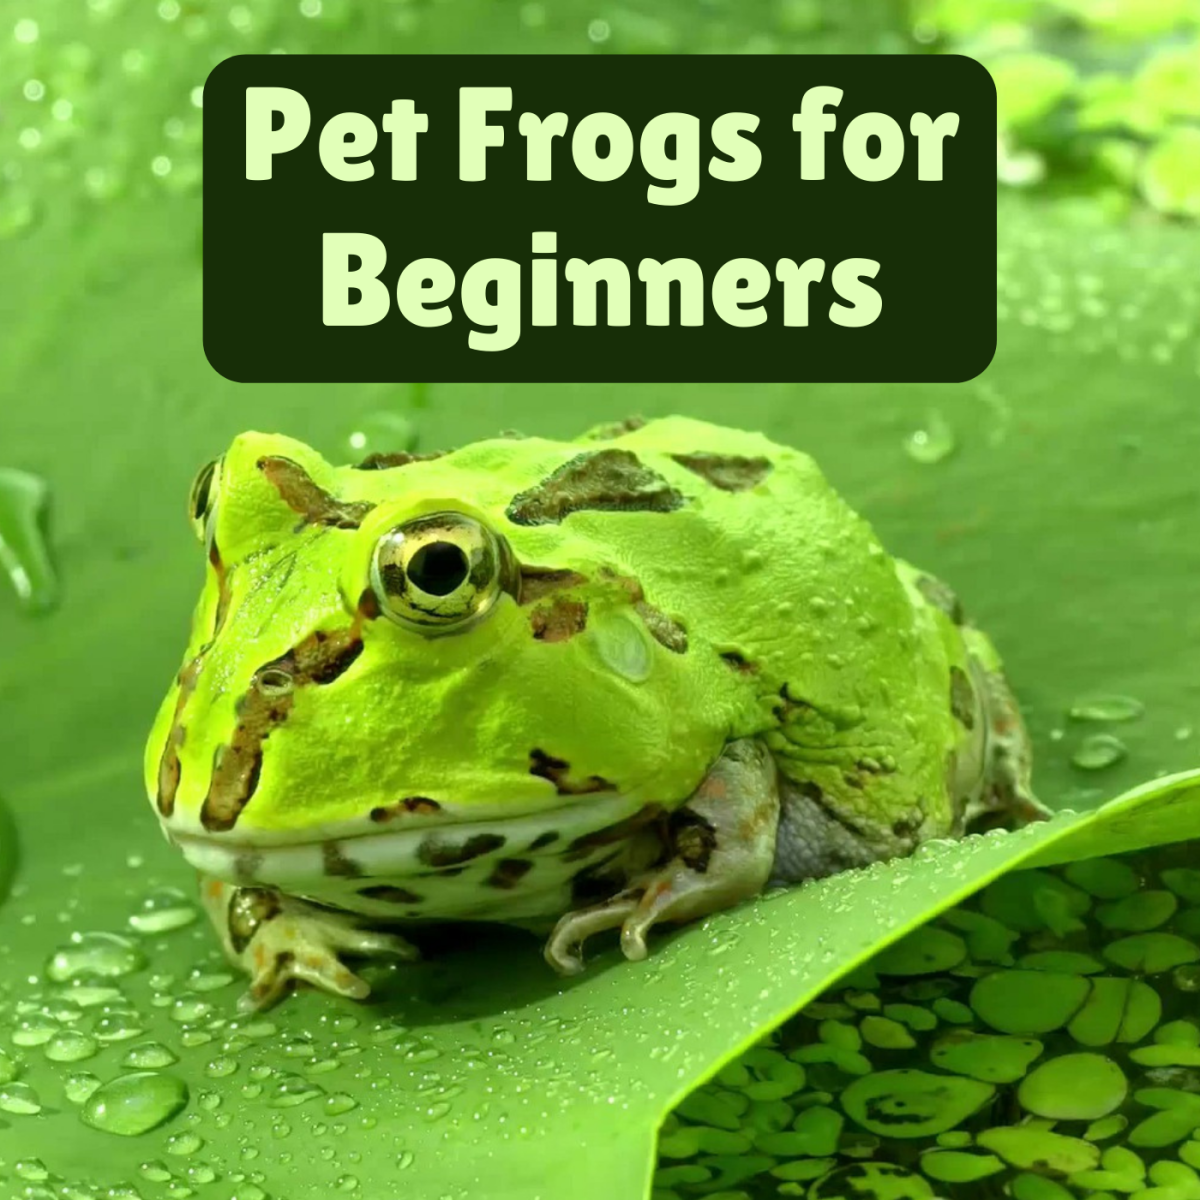 7 Best Pet Frogs for Beginners